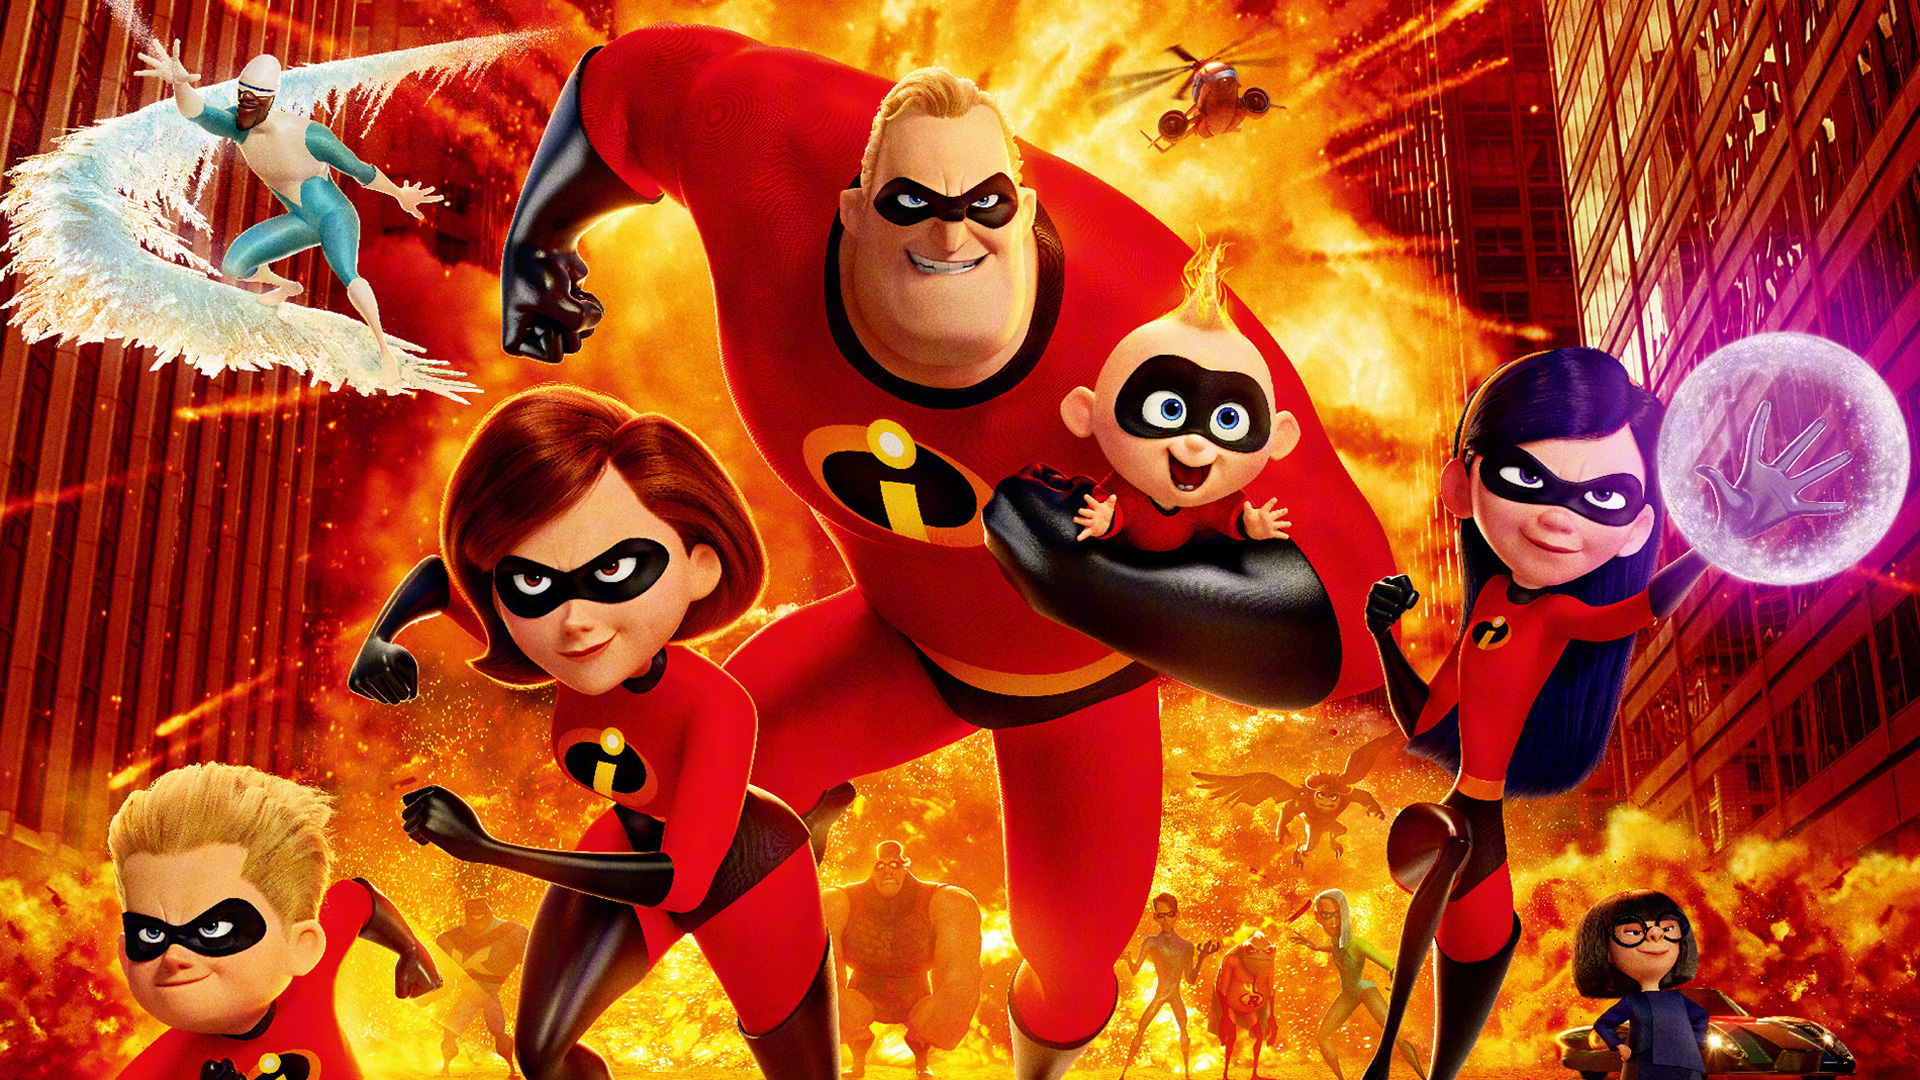 the incredibles 2 chinese poster, hd movies, 4k wallpapers, images